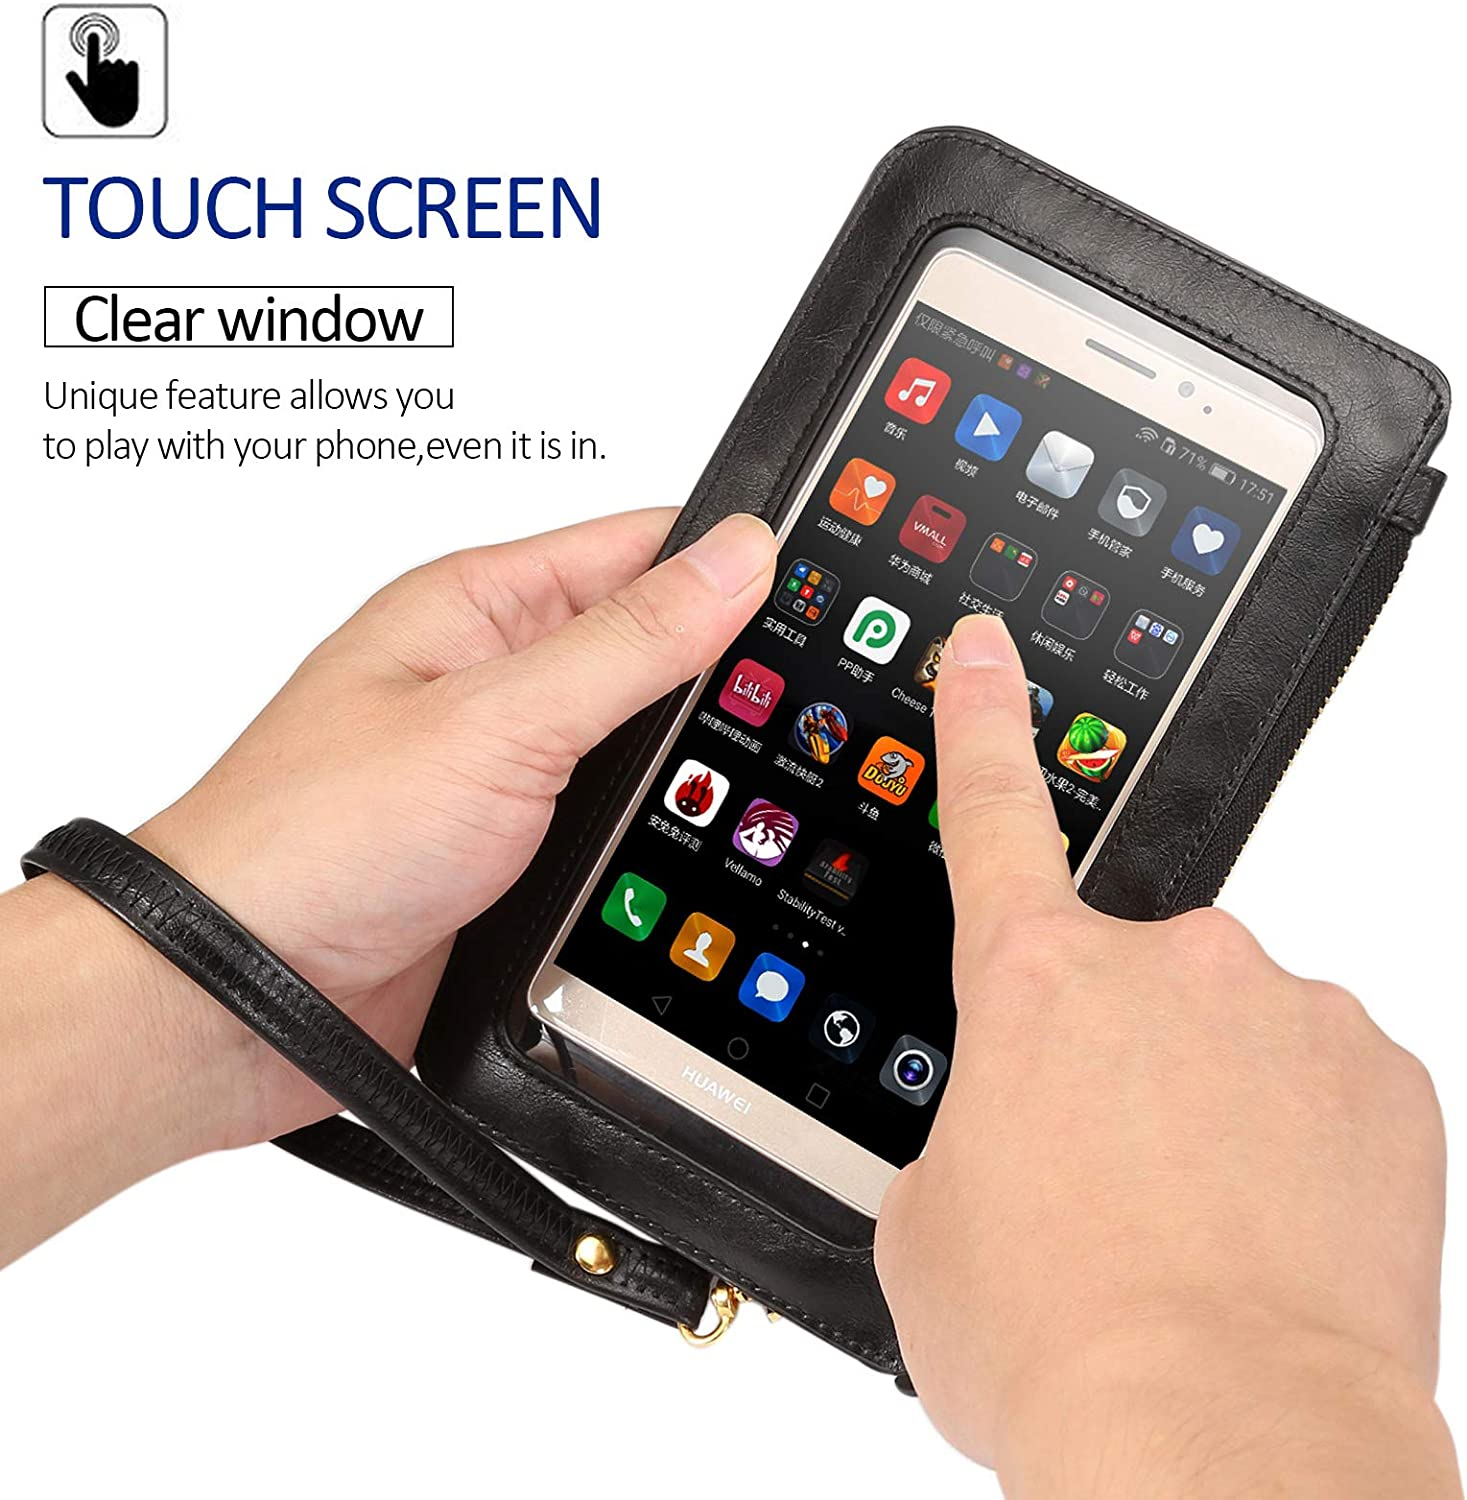 Black Techcircle Phone Pouch 2-Layer Pockets View Window Touch Screen Small Handbag for iPhone X//Xs//Xr//8 7 6 Plus Galaxy S7 Edge//Note 7 Cellphone Purse Crossbody Bag Moto Z2 Force//Play